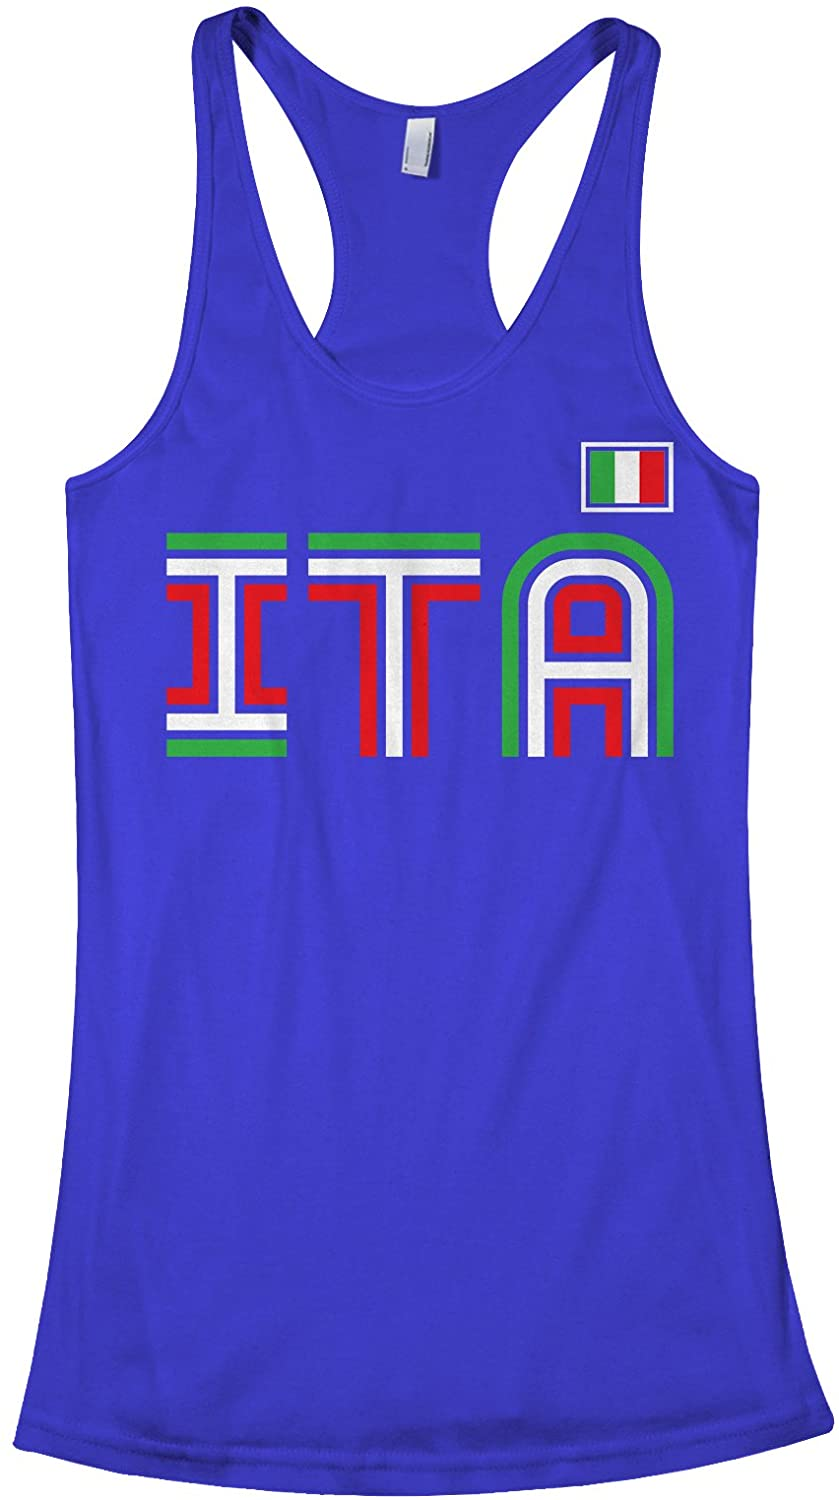 Threadrock Women's Italy Athletic Retro Series Racerback Tank Top